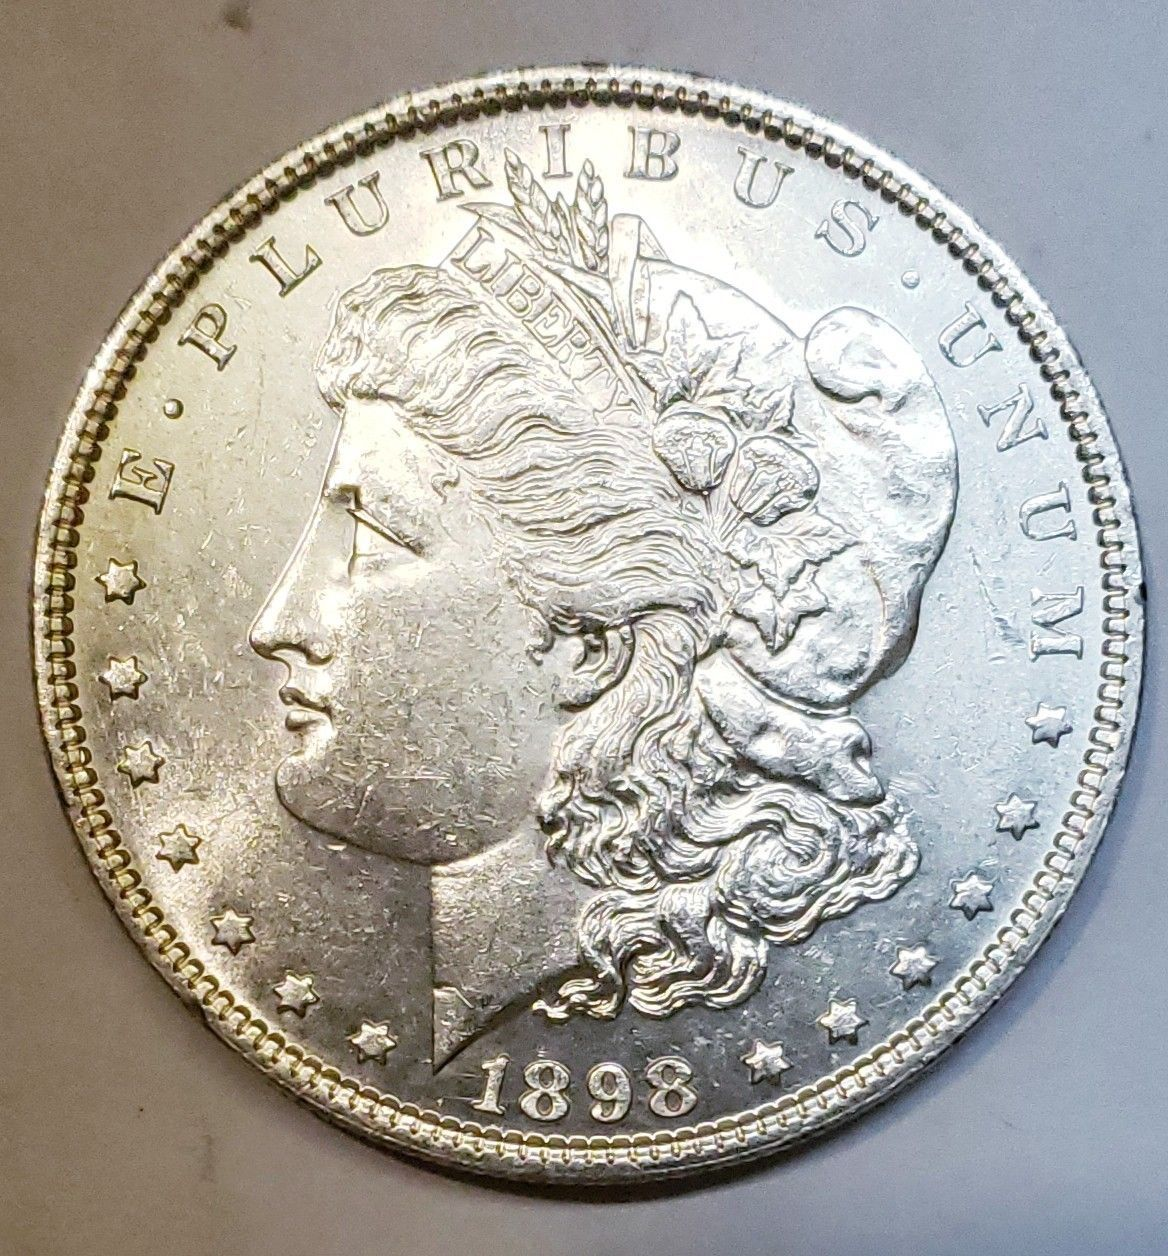 1898 $1 Morgan Silver Dollar Coin Lot # E 112